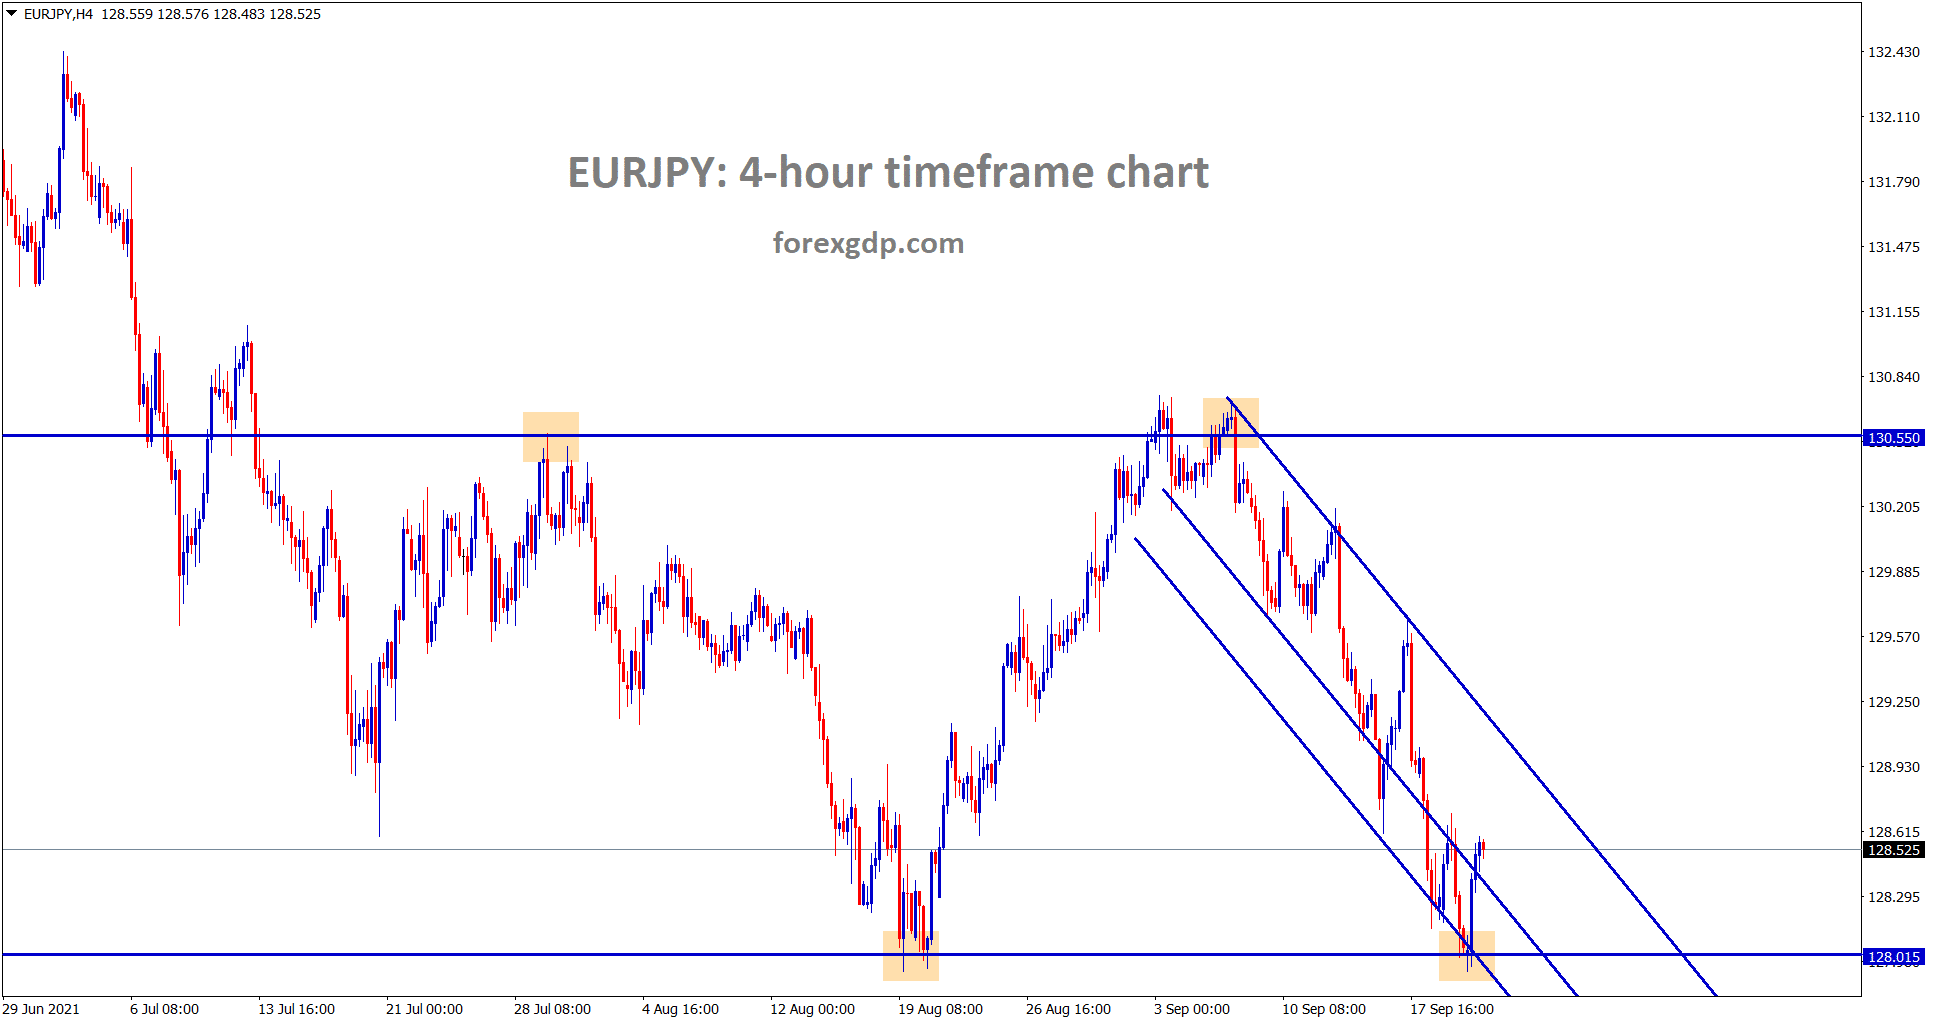 EURJPY is still moving in a descending channel range and recently rebound from the support area